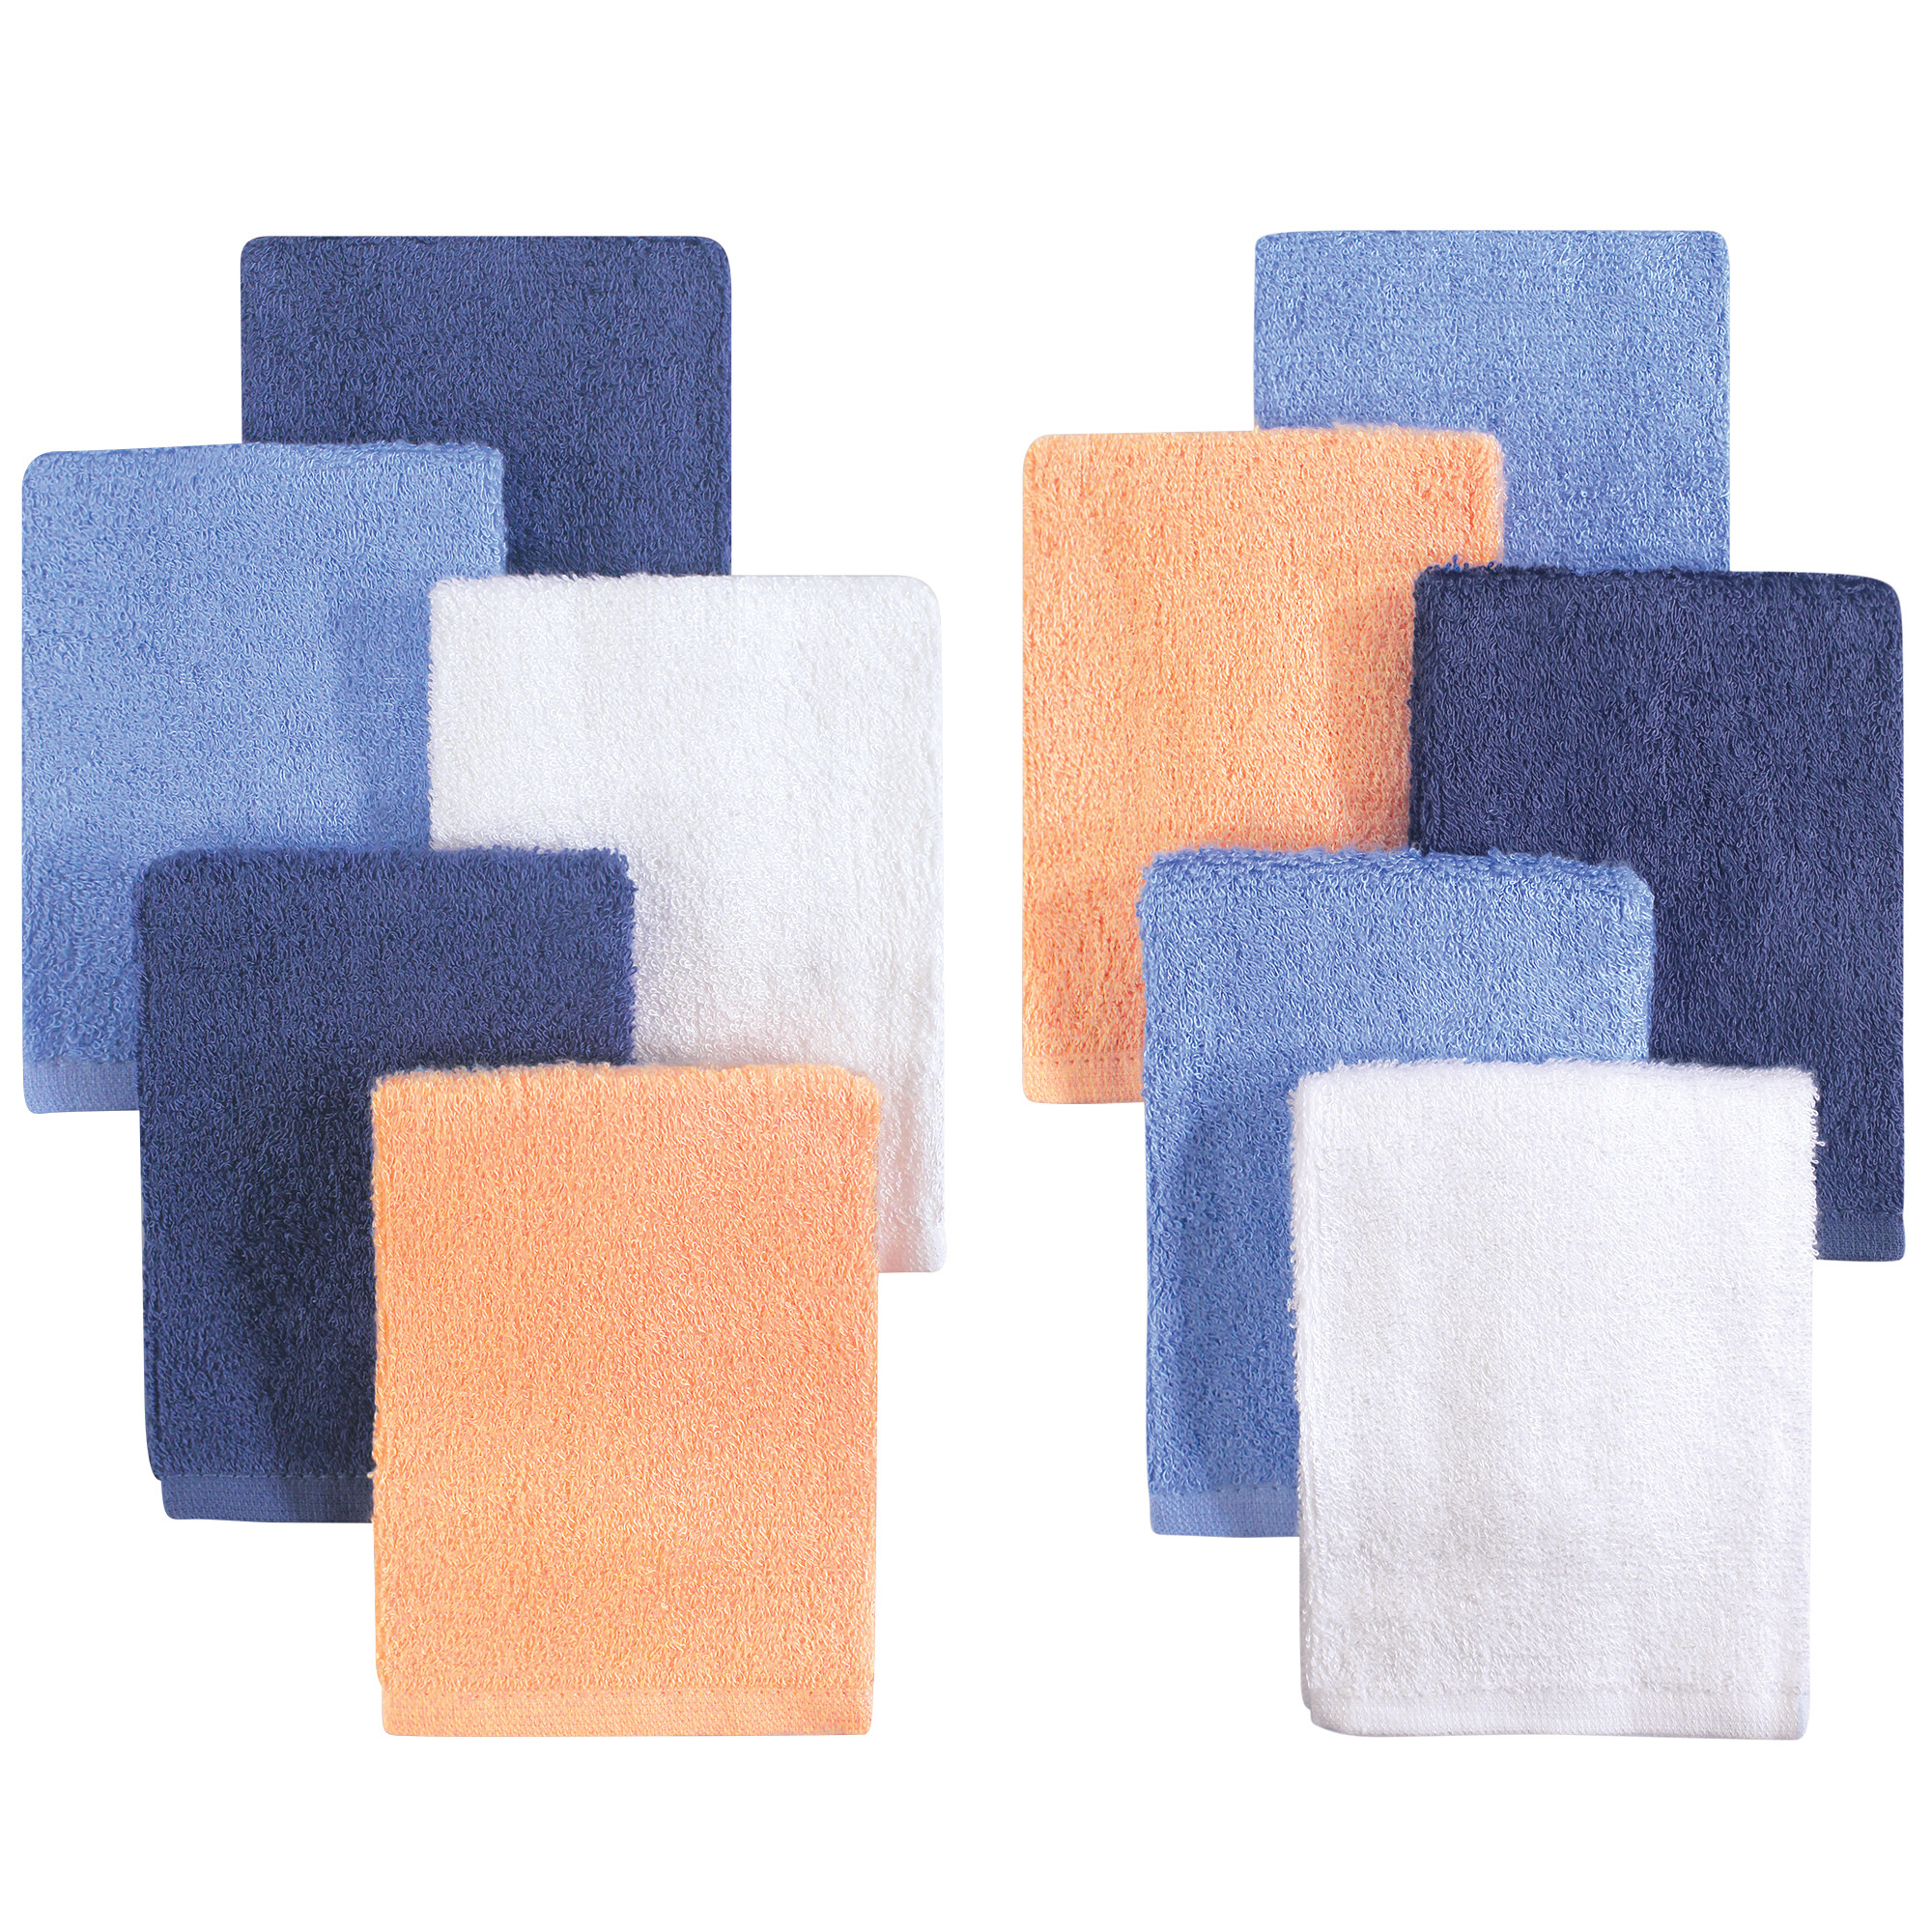 Little Treasure Luxuriously Soft Washcloths, 10 Pack, Blue Orange by Little Treasure